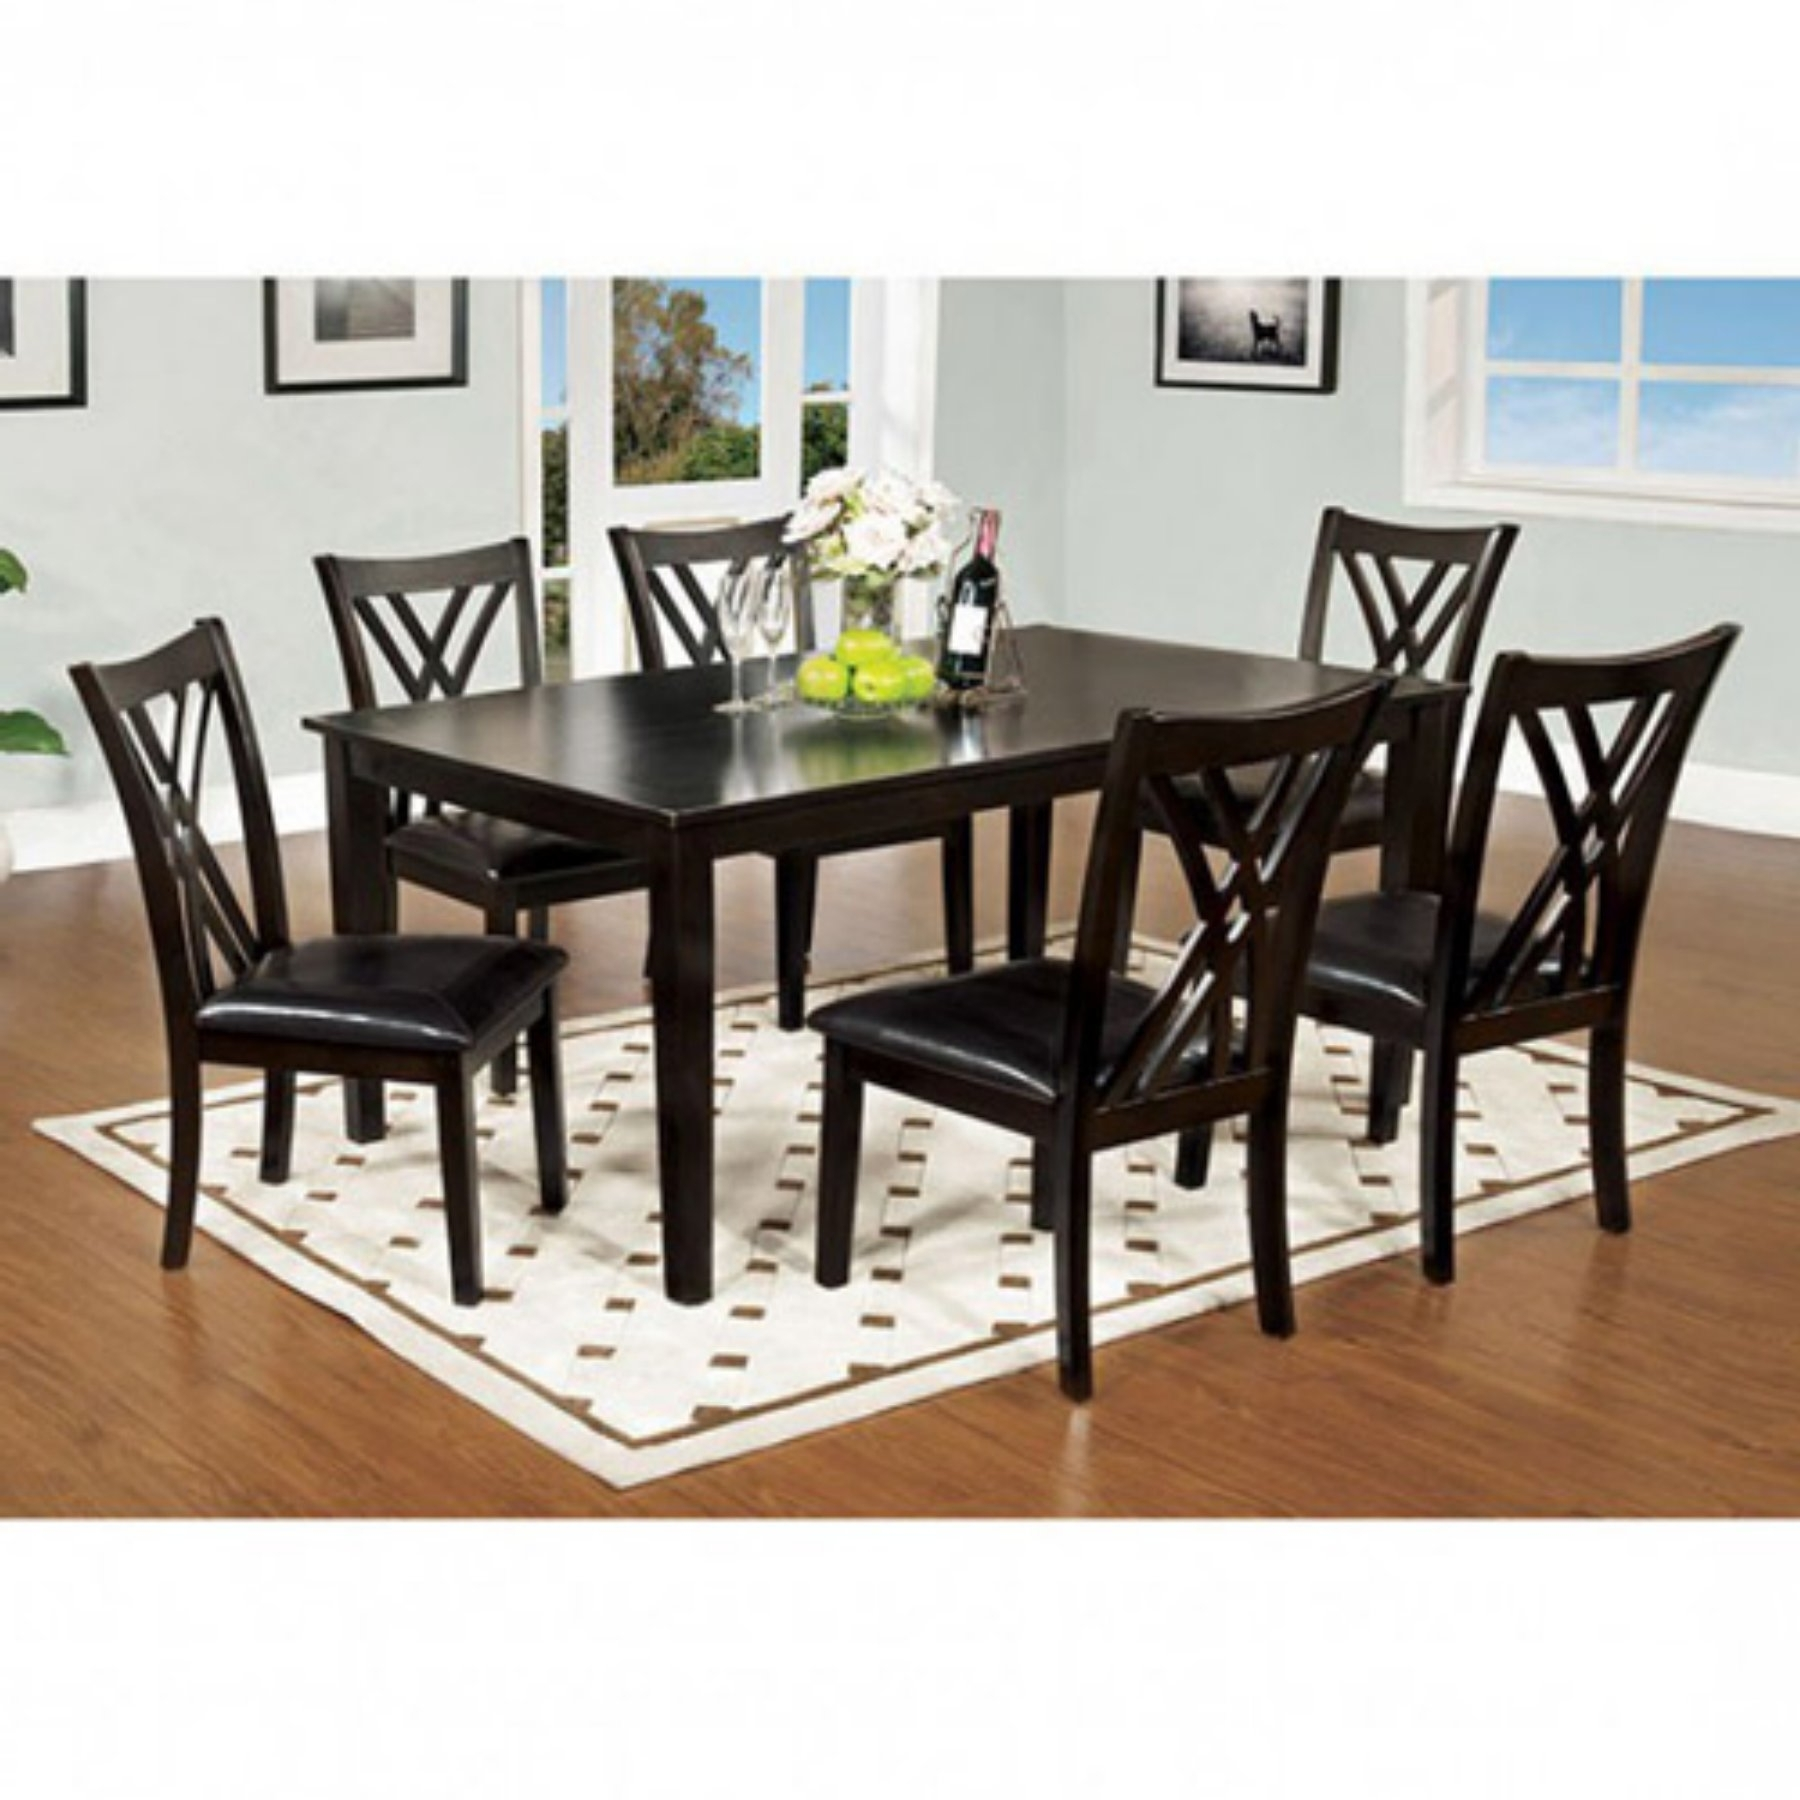 Favorite Laurent 7 Piece Rectangle Dining Sets With Wood And Host Chairs With Regard To Benzara Springhill Enticing 7 Piece Rectangular Dining Table Set In (View 12 of 25)